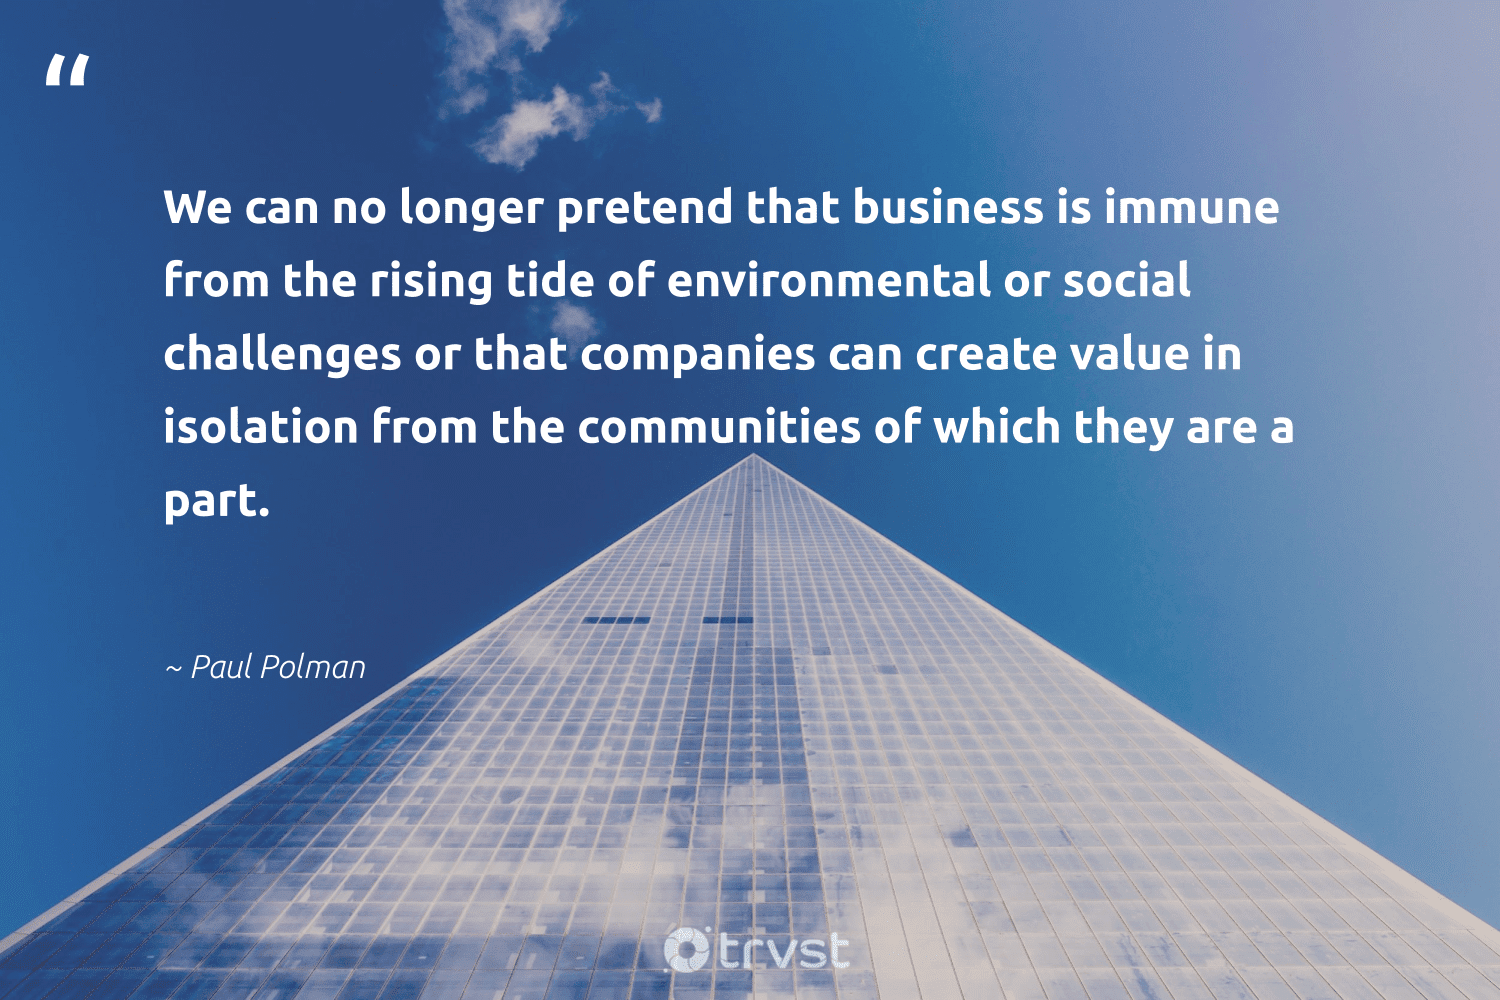 """""""We can no longer pretend that business is immune from the rising tide of environmental or social challenges or that companies can create value in isolation from the communities of which they are a part.""""  - Paul Polman #trvst #quotes #environmental #communities #giveback #dogood #ecoconscious #socialchange #sustainable #beinspired #weareallone #gogreen"""